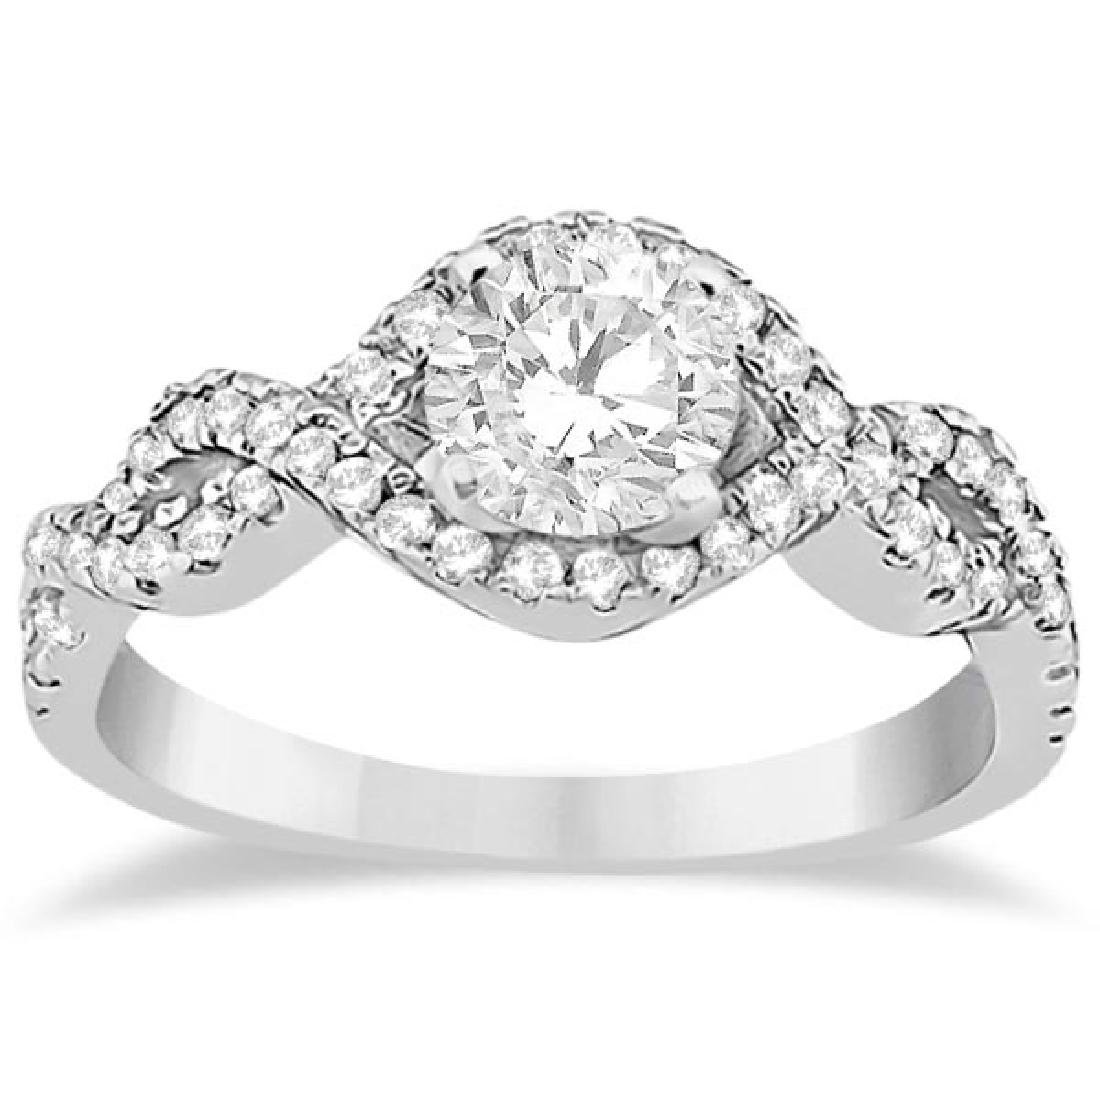 Diamond Halo Infinity Engagement Ring In 14K White Gold